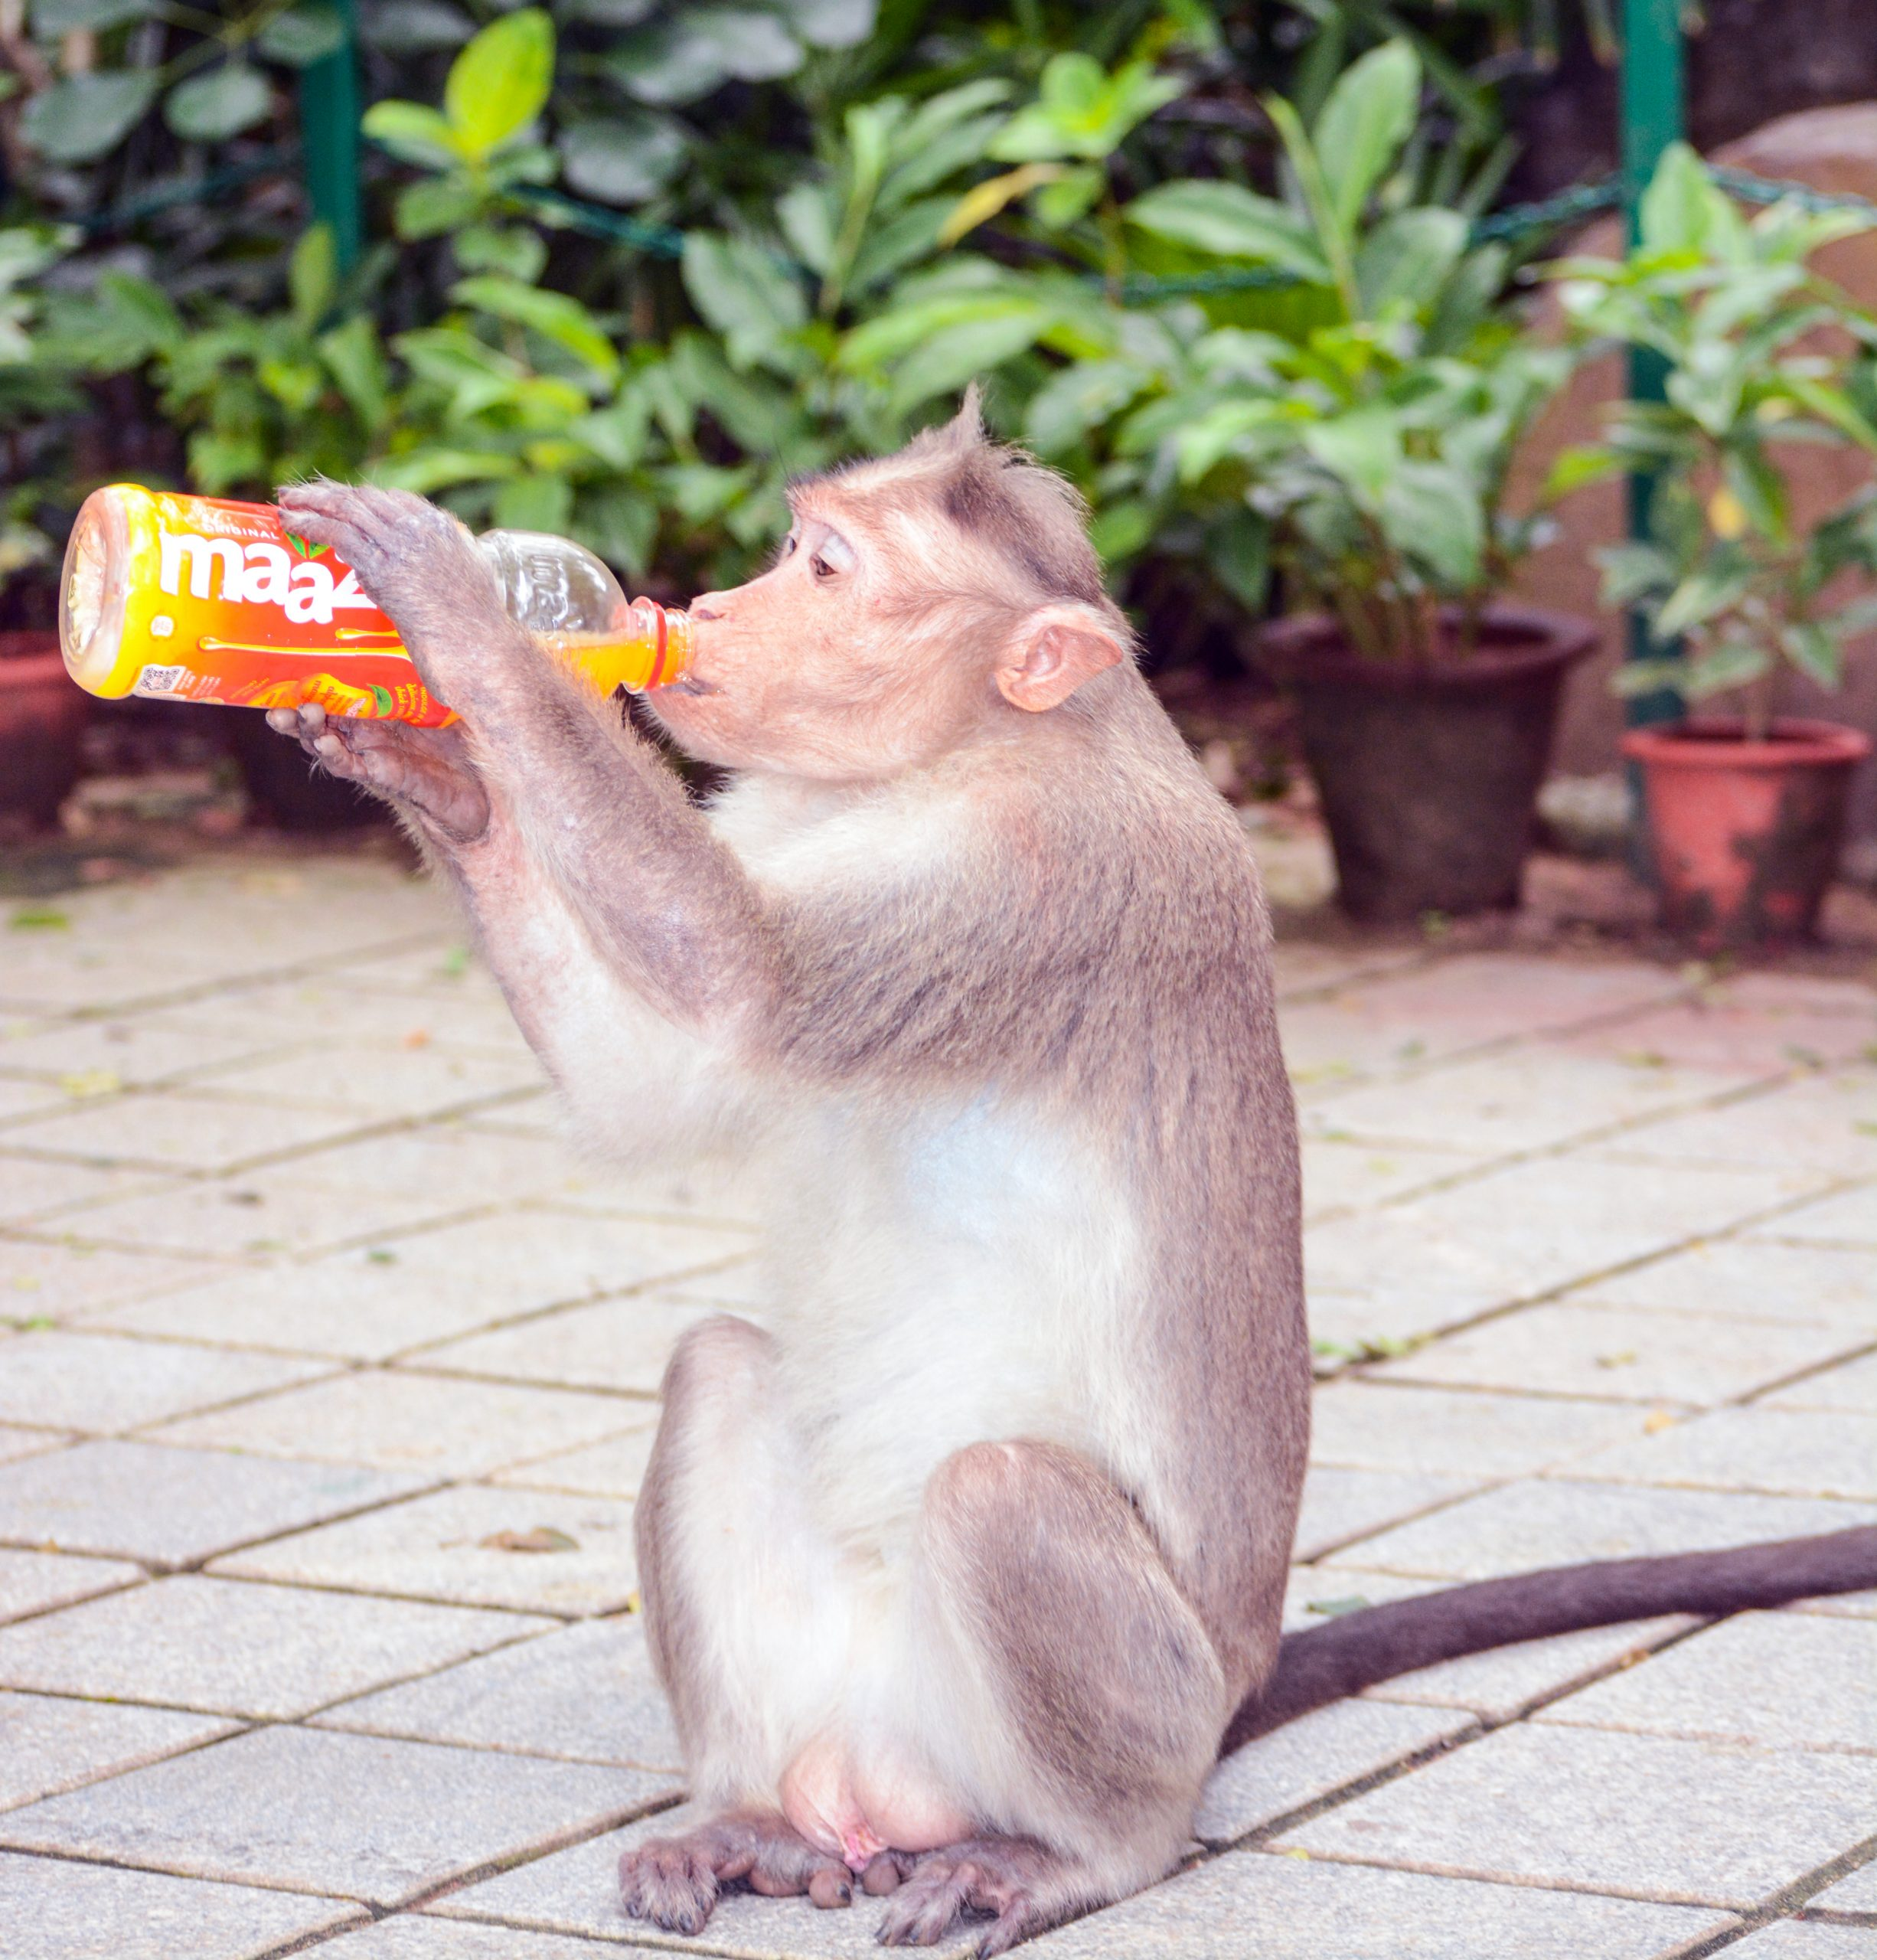 Monkey drinking from a bottle